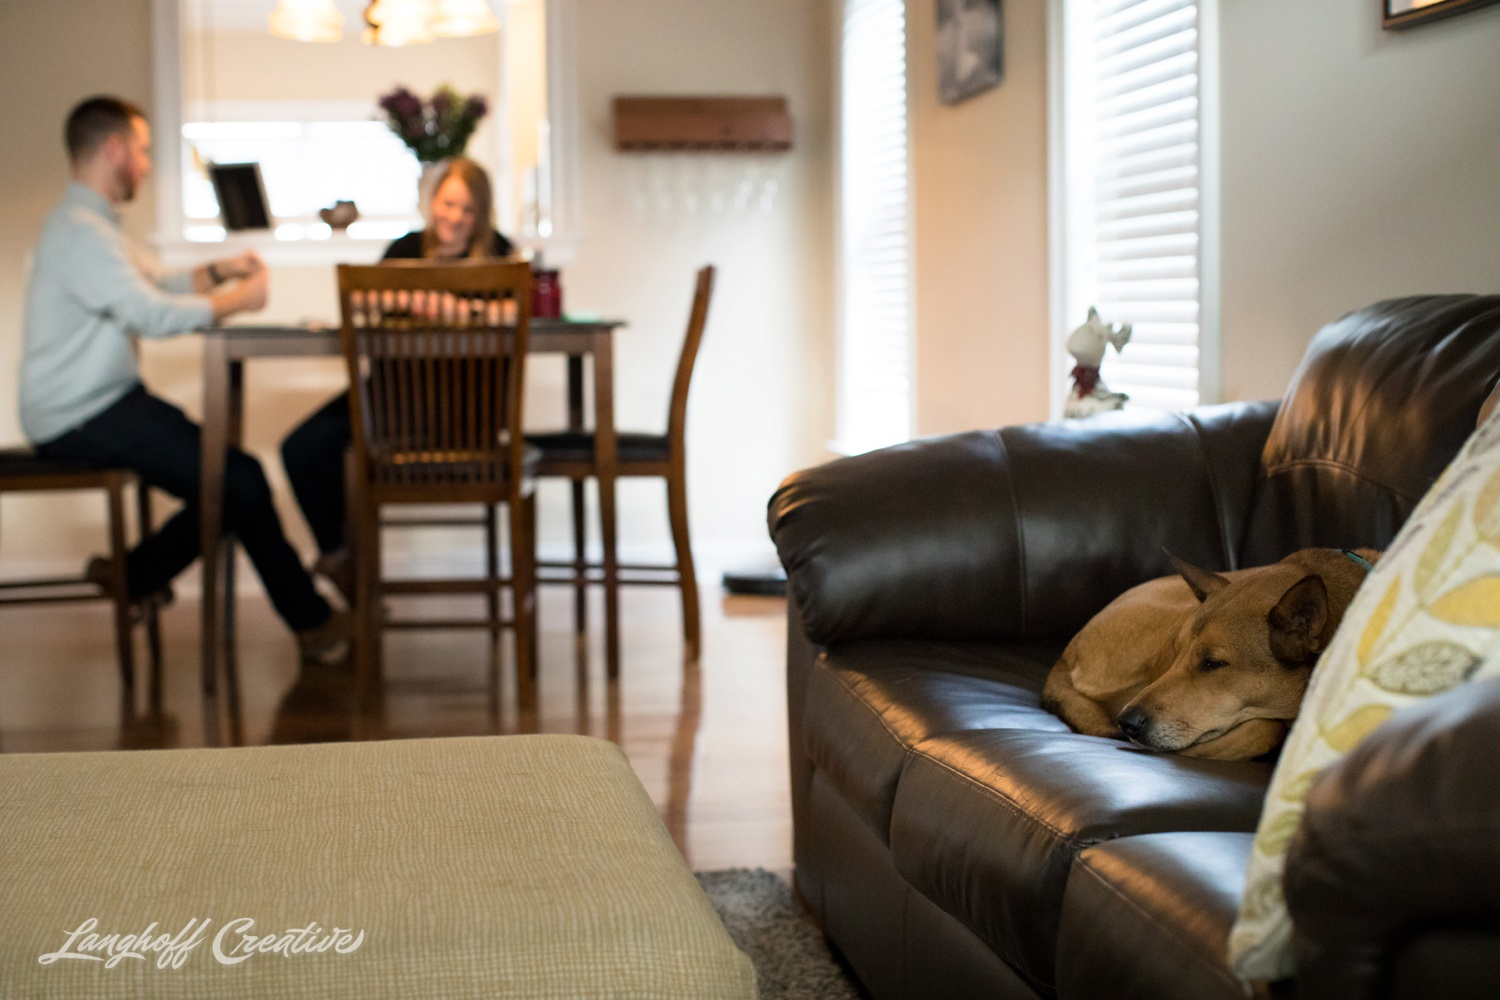 20171118-ByrdChristmas-Dogs-Holidays-LanghoffCreative-RealLifeSession-DocumentaryFamilyPhotography-RDUphotographer-7-photo.jpg